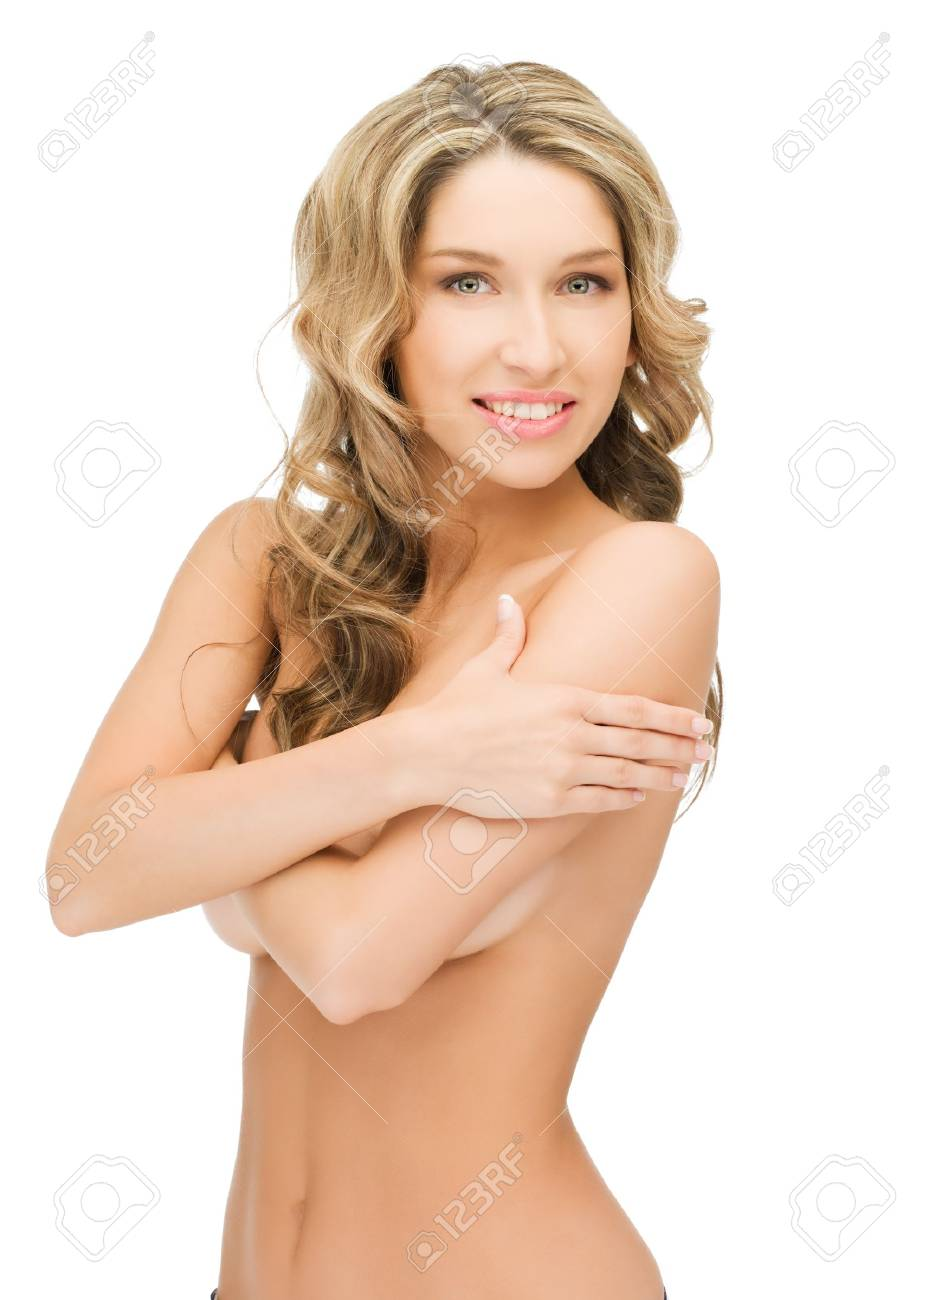 bright closeup picture of beautiful topless woman Stock Photo - 12971352